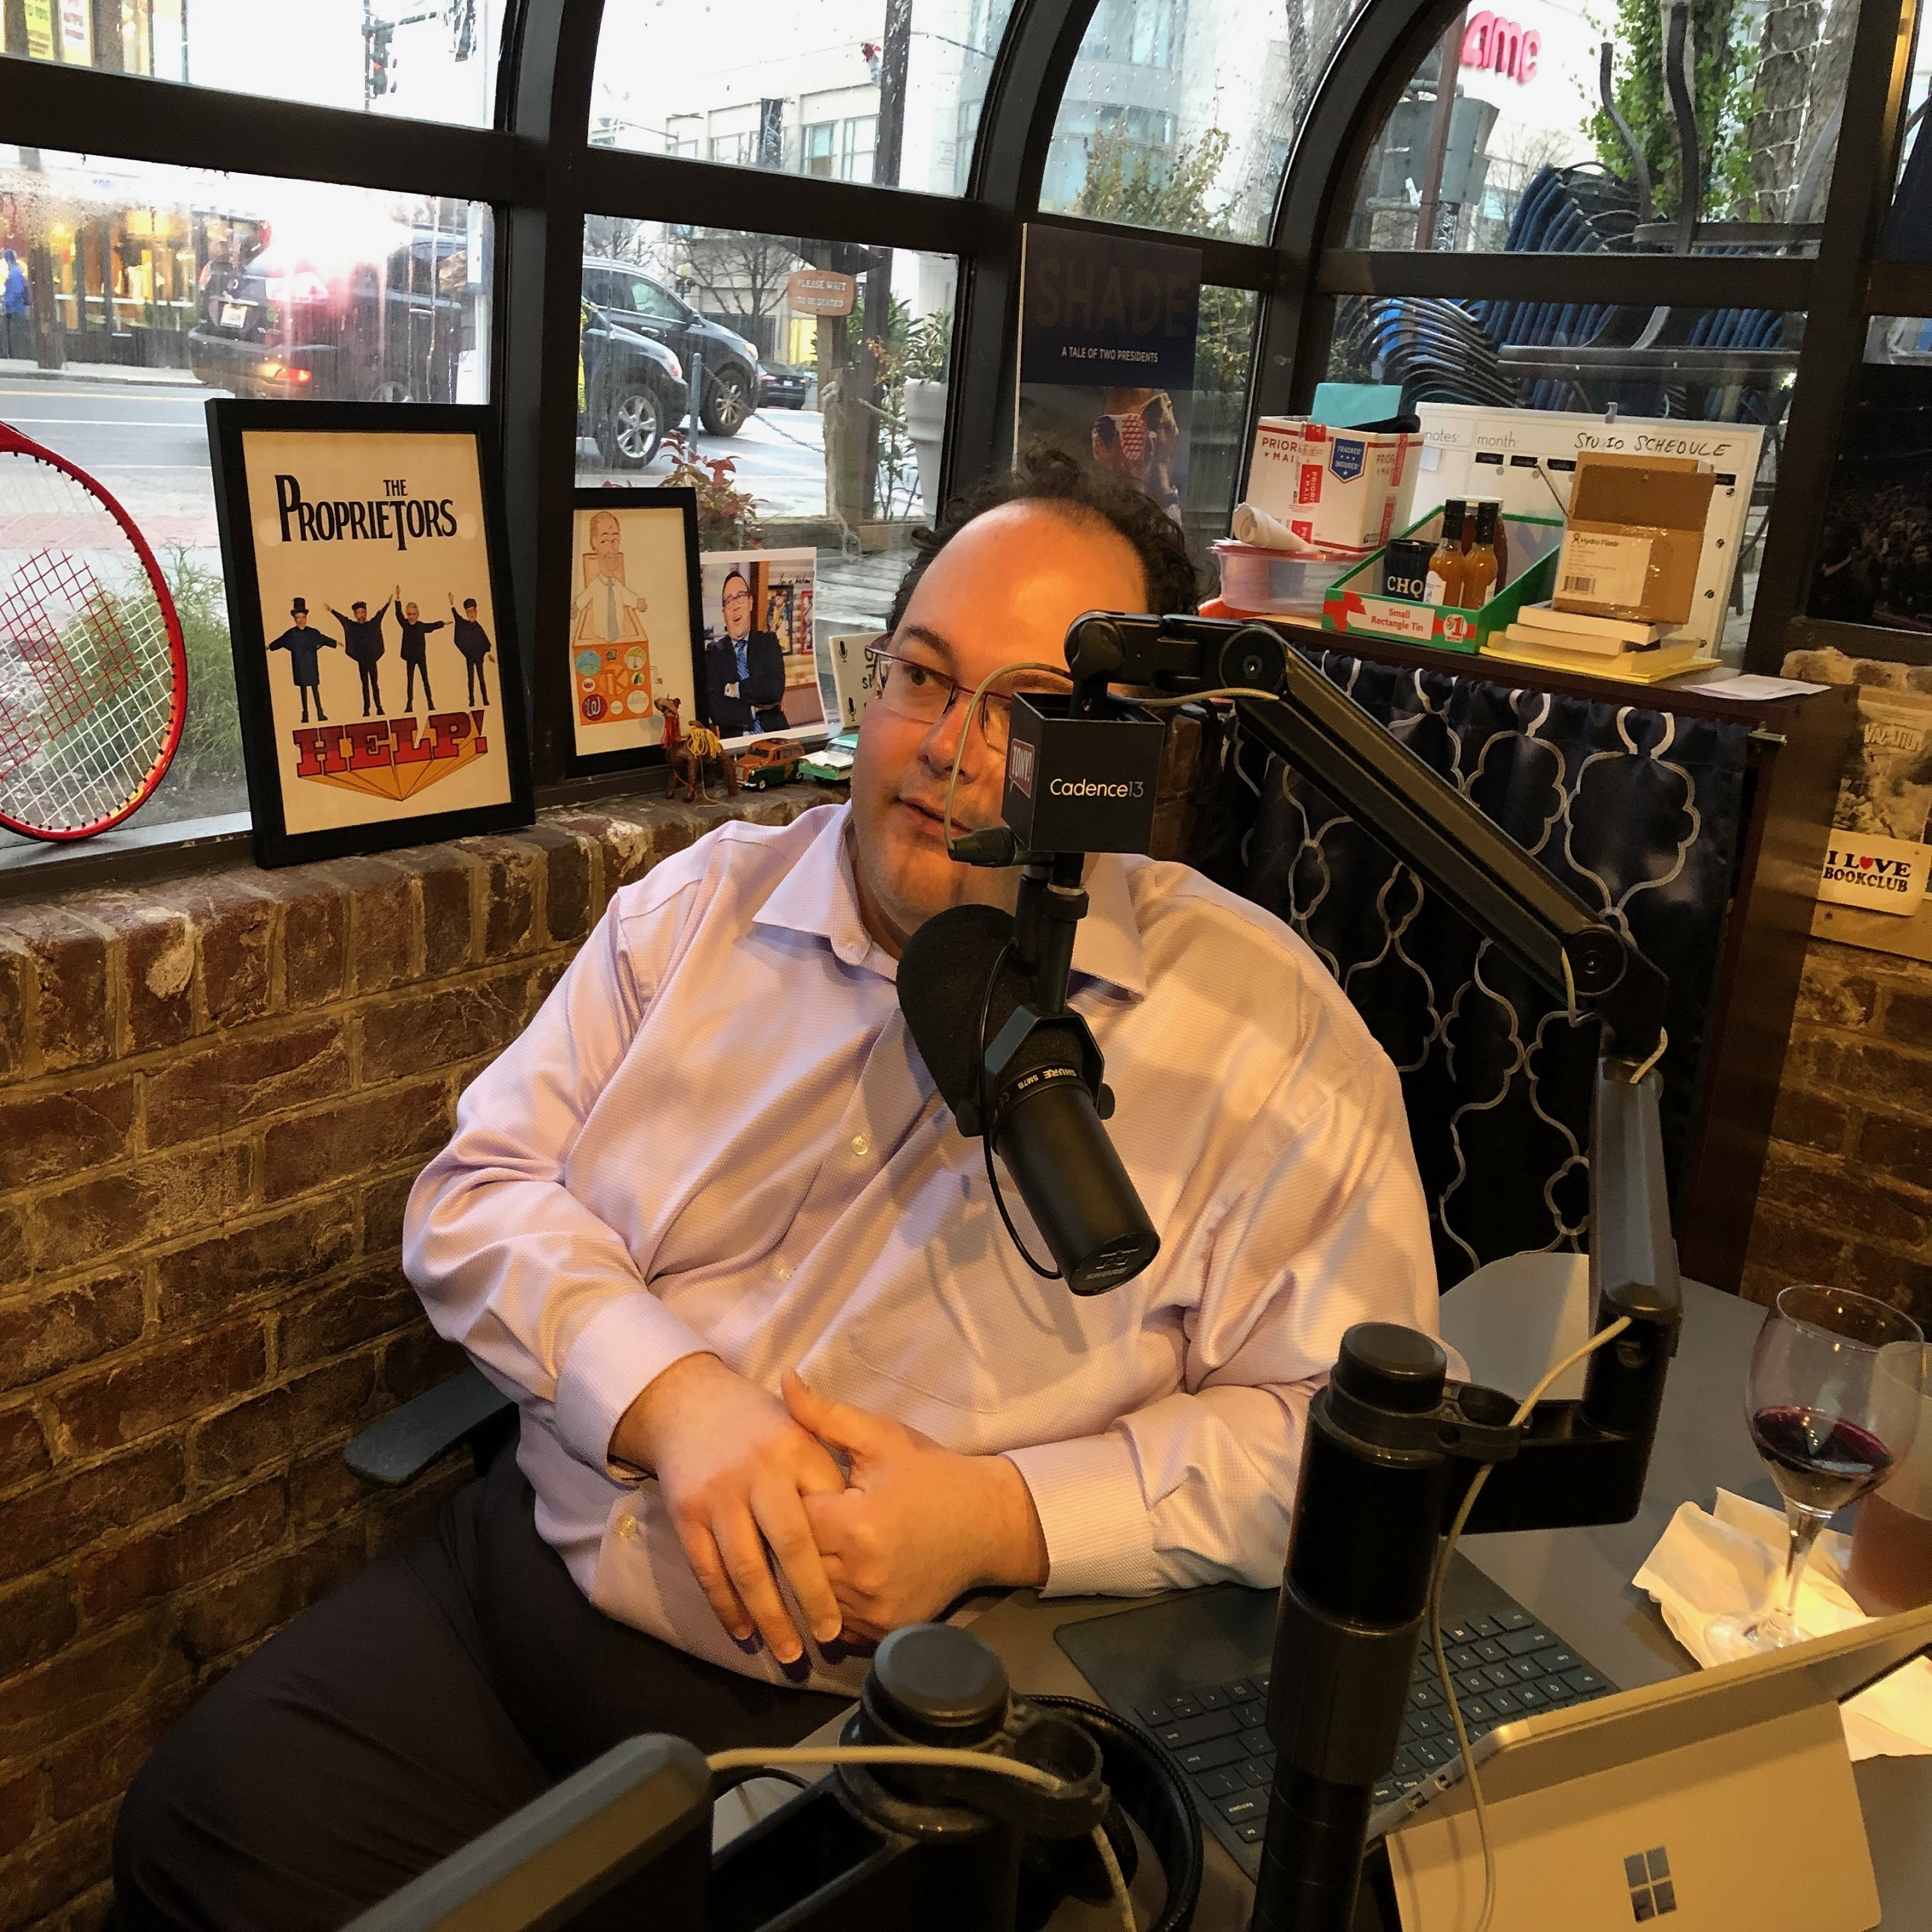 Law & Business Podcast Episode 53: A Plush Toy Client Begins with Consultants